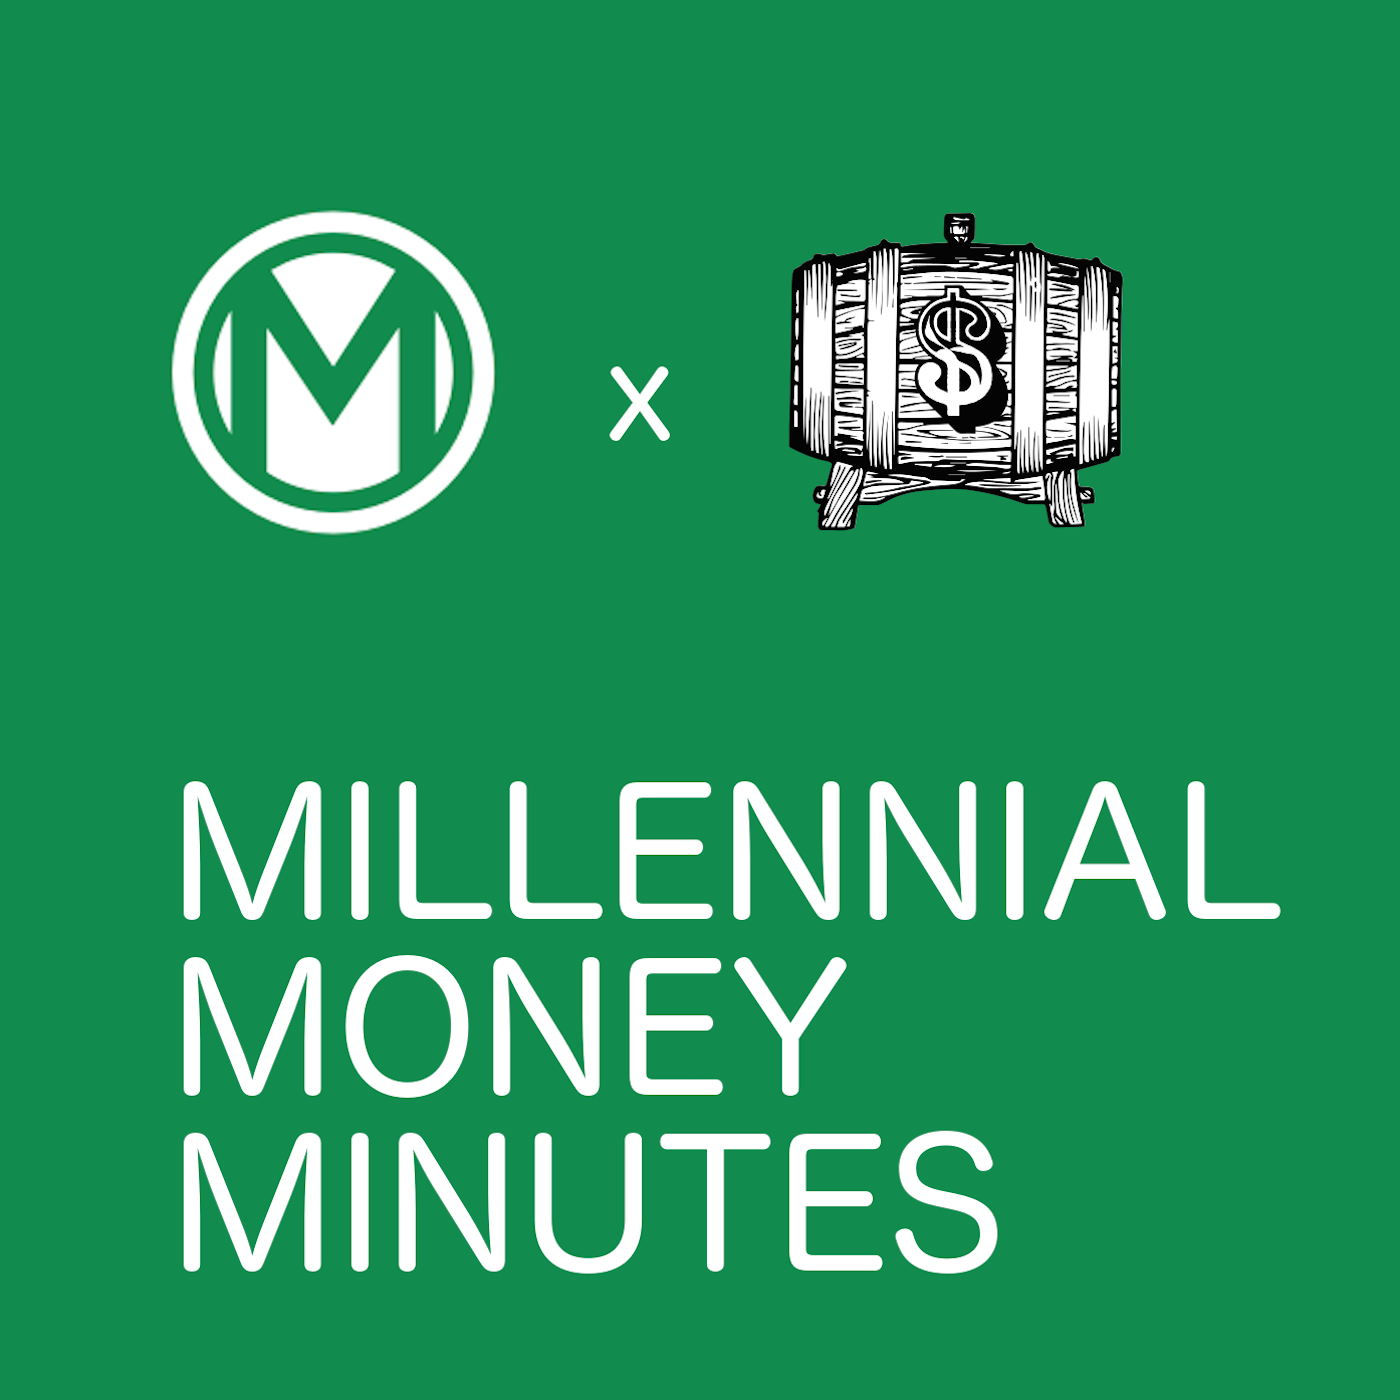 Millennial Money Minutes | Personal Finance in 5 Minutes